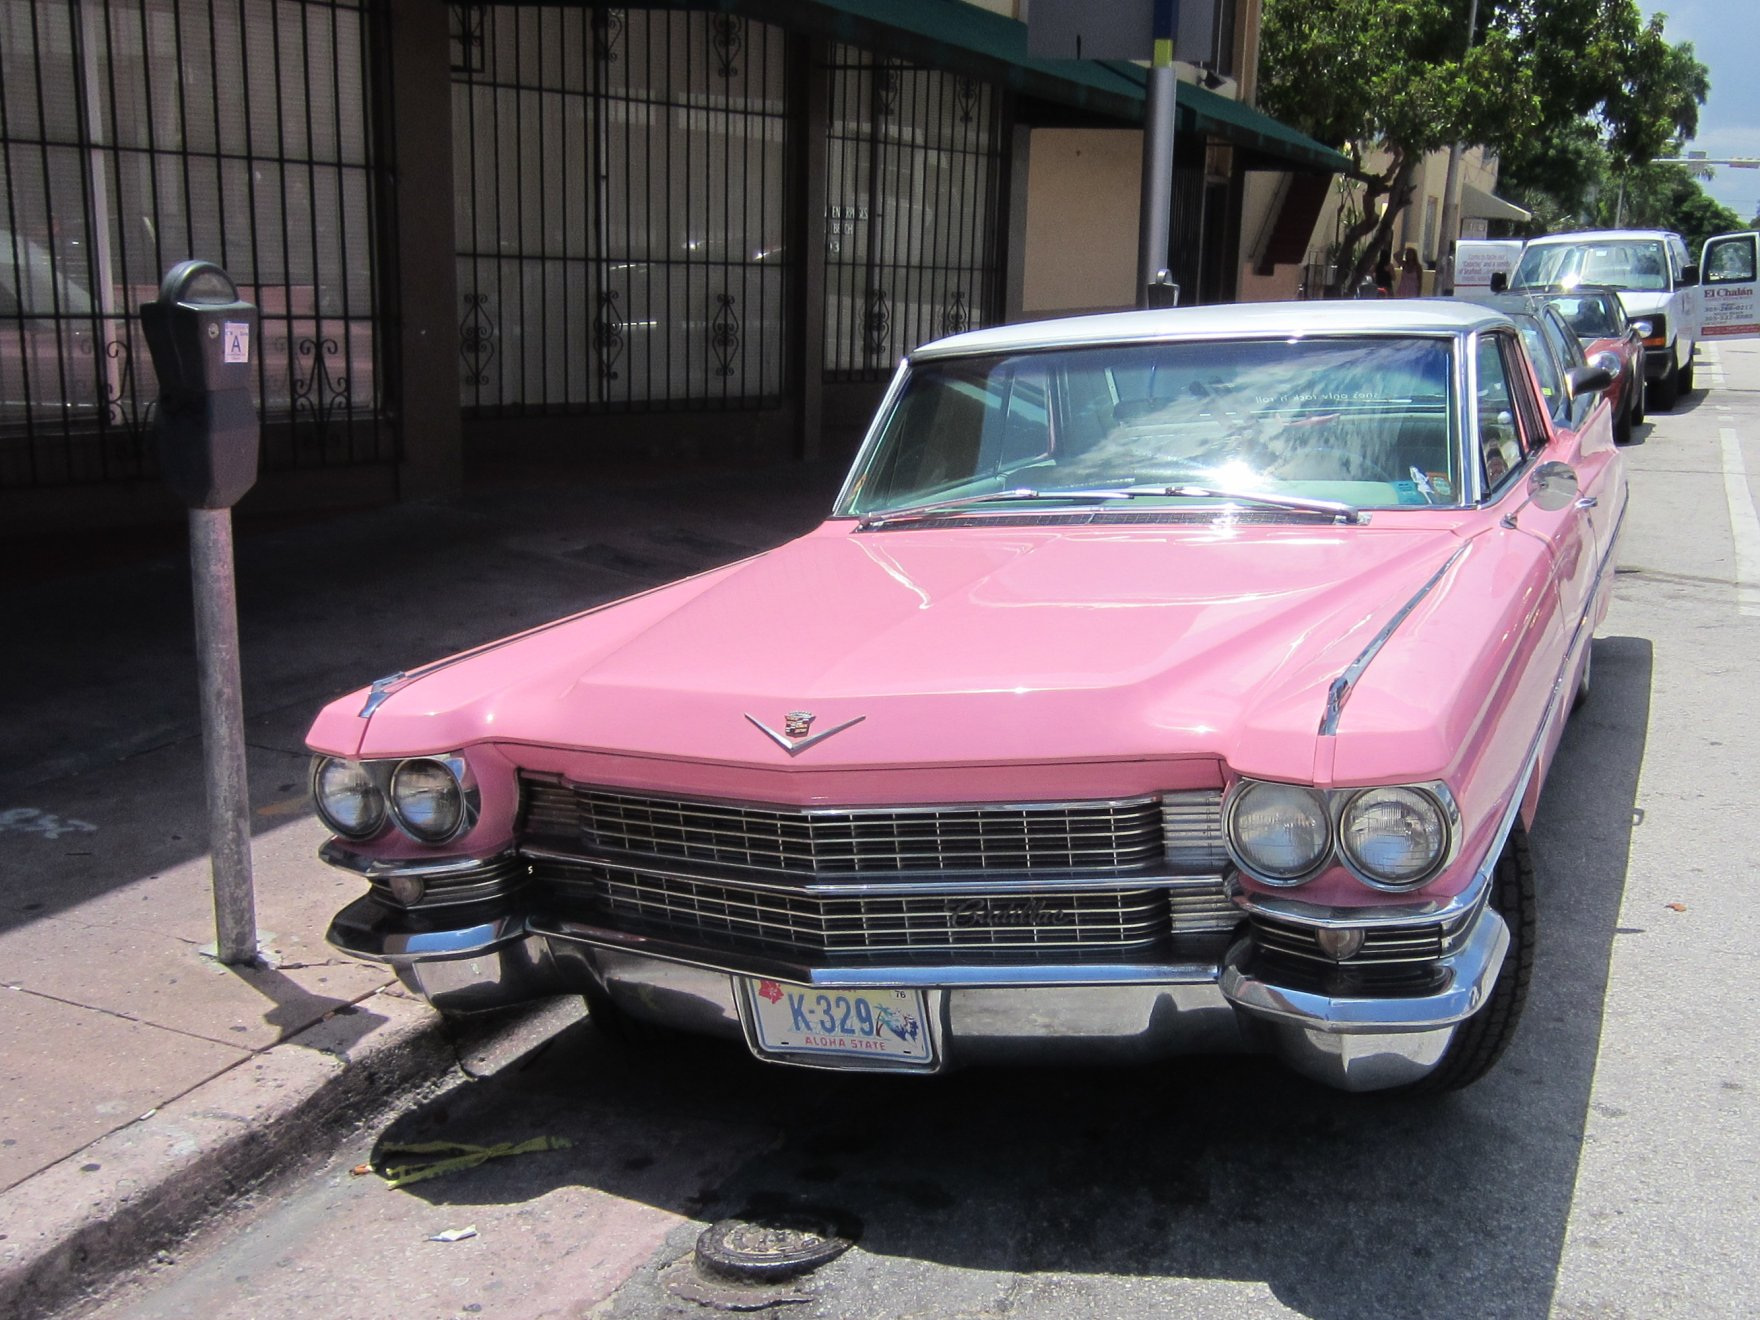 Pink Cars For Sale Adelaide